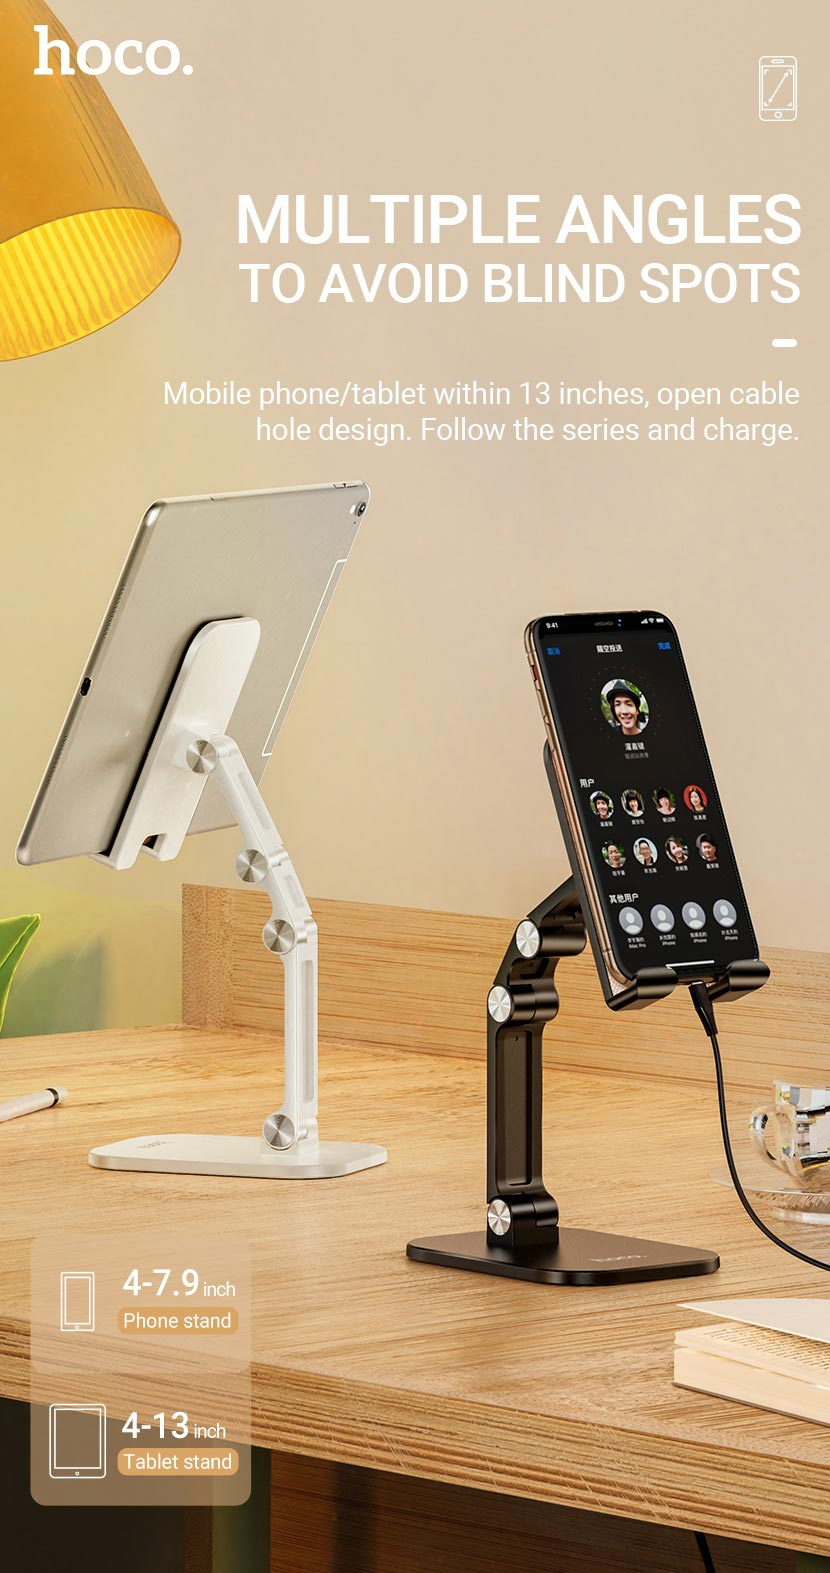 hoco news ph34 excelente double folding desktop stand phone tablet en